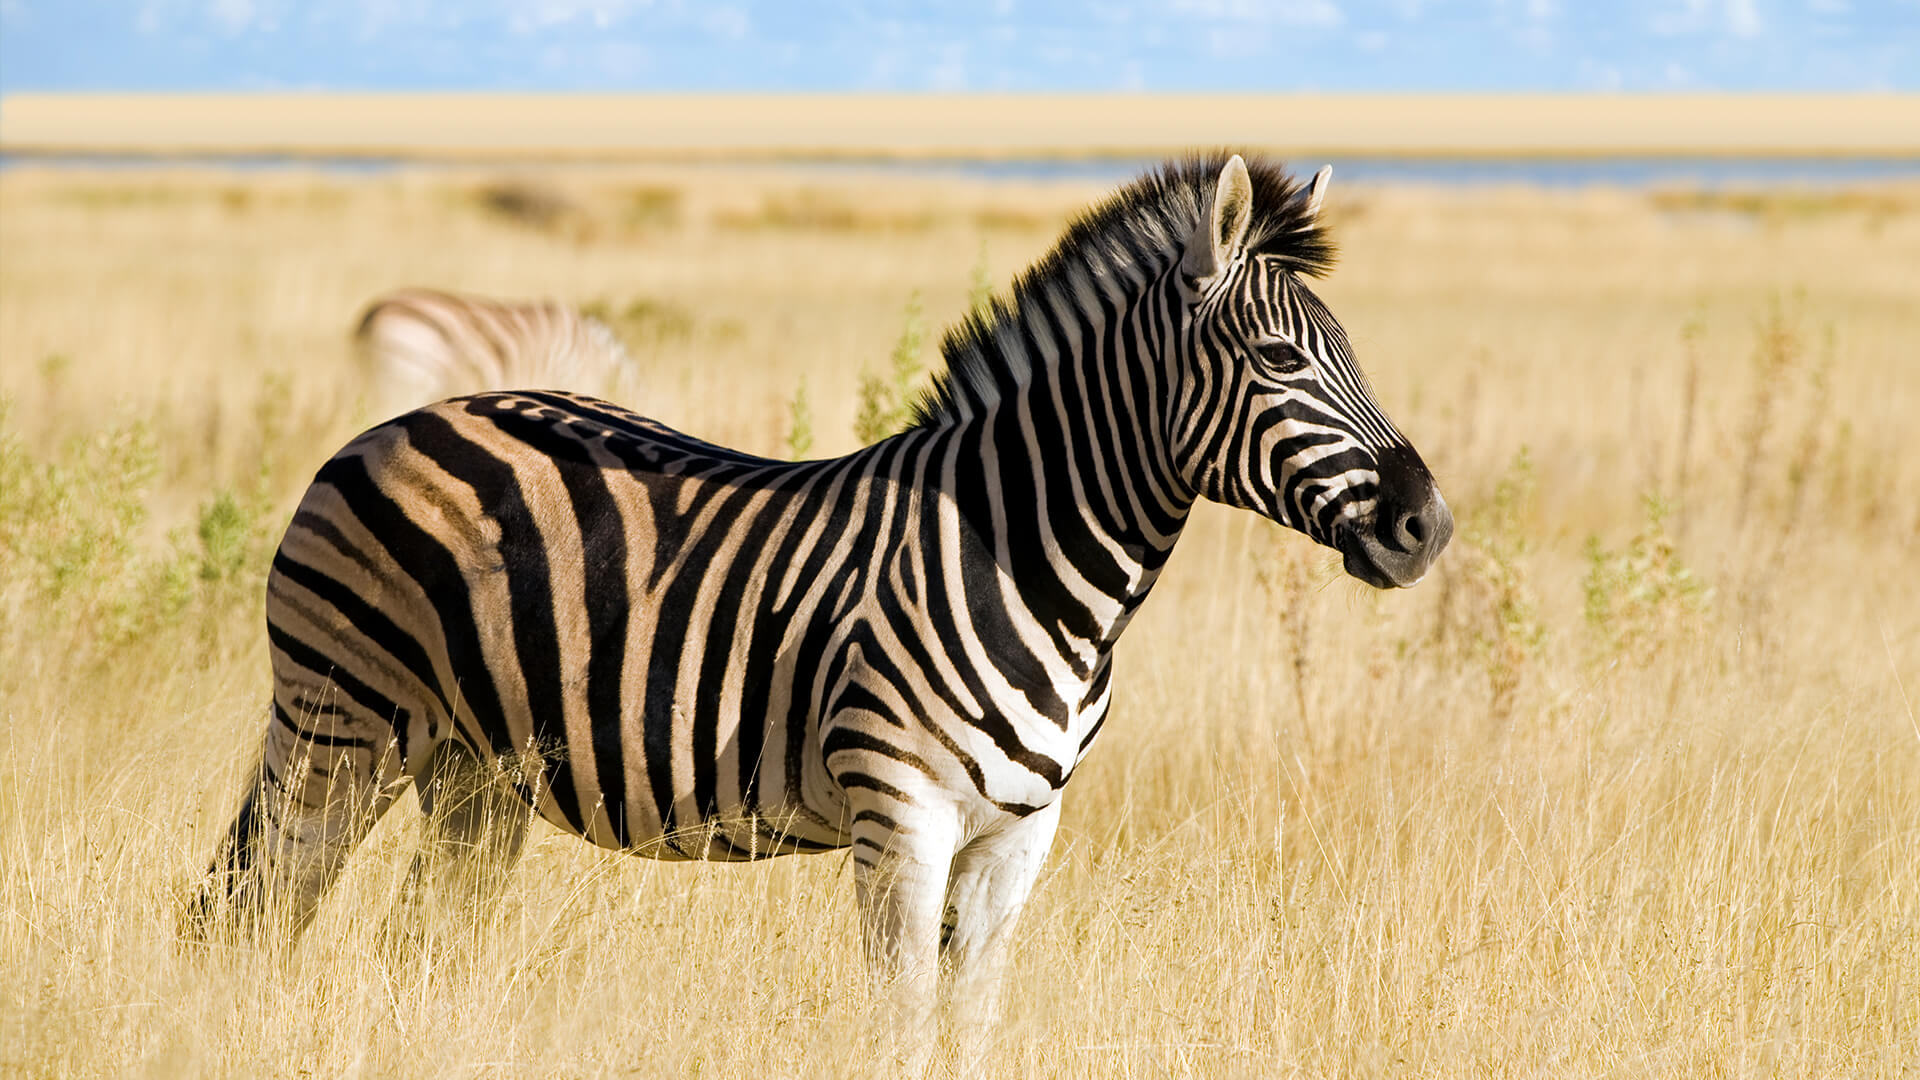 HQ Zebra Wallpapers | File 331.2Kb